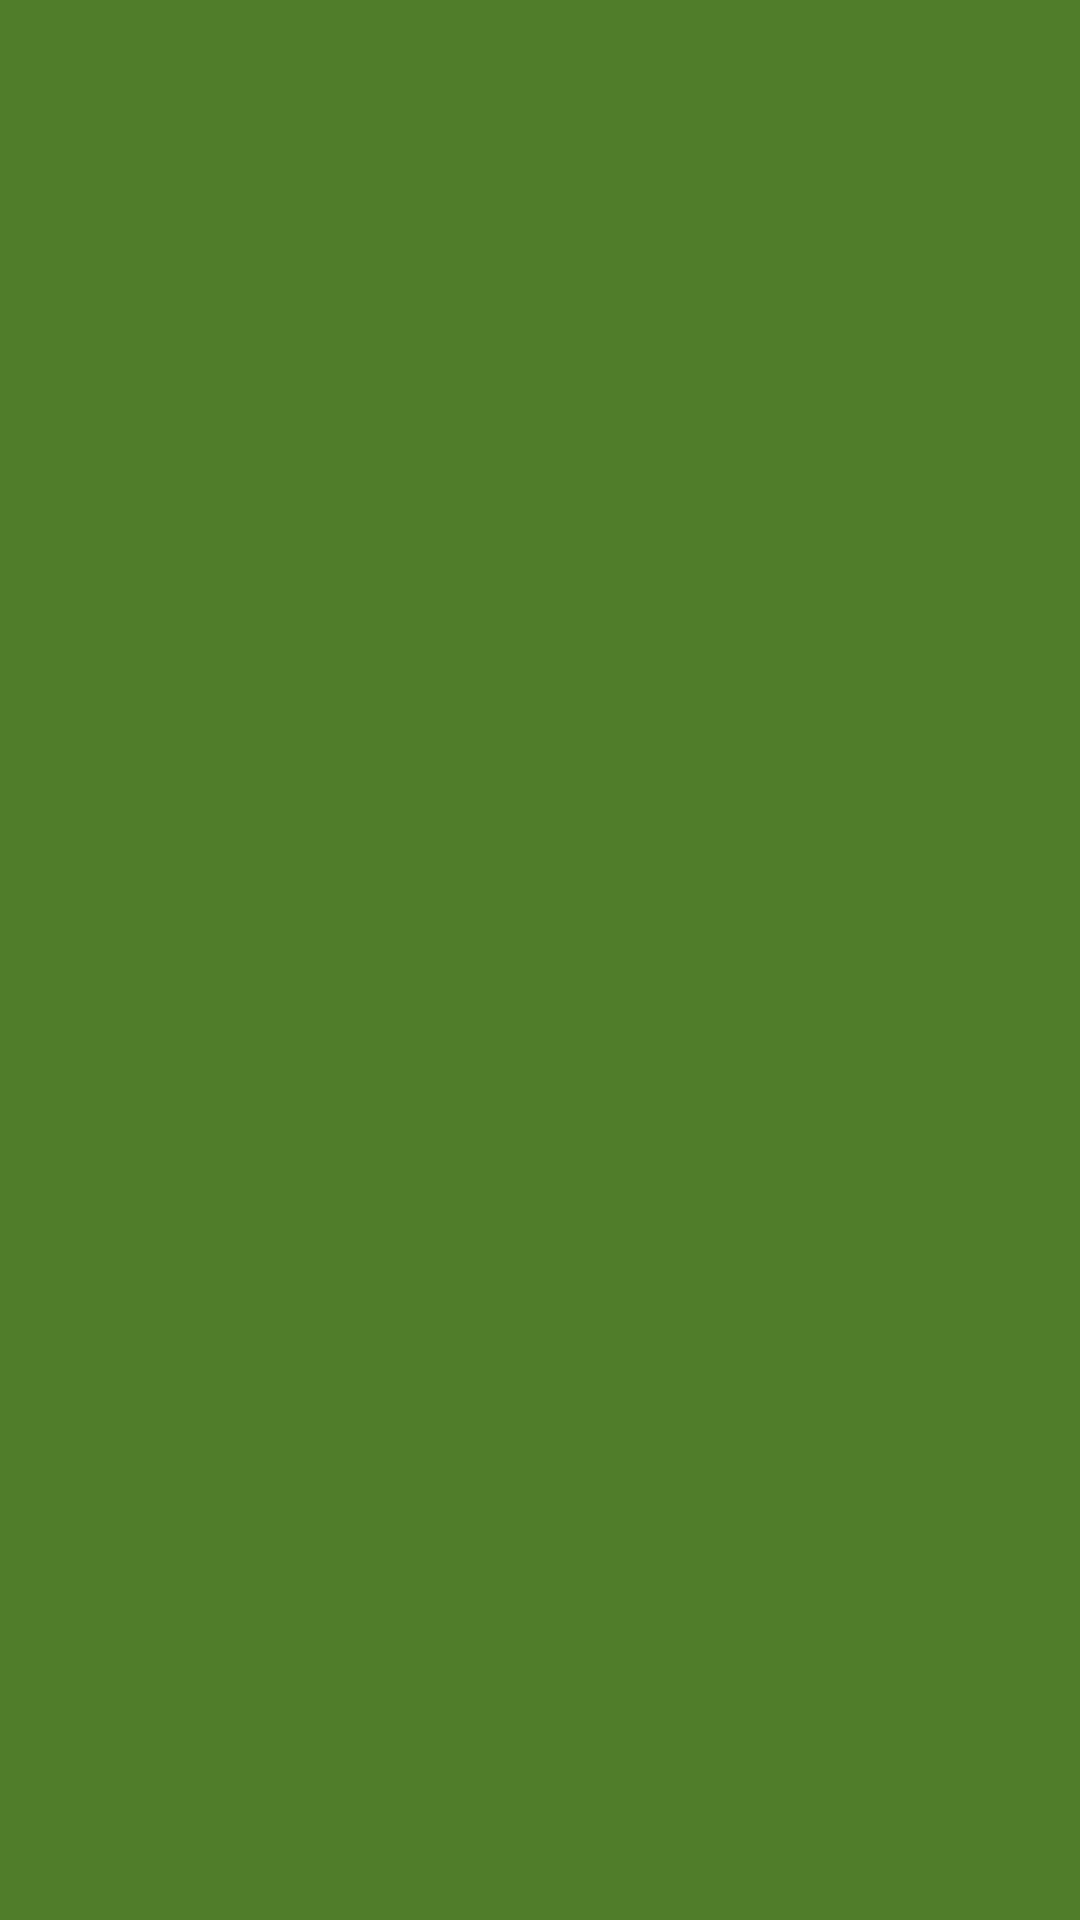 1080x1920 Sap Green Solid Color Background